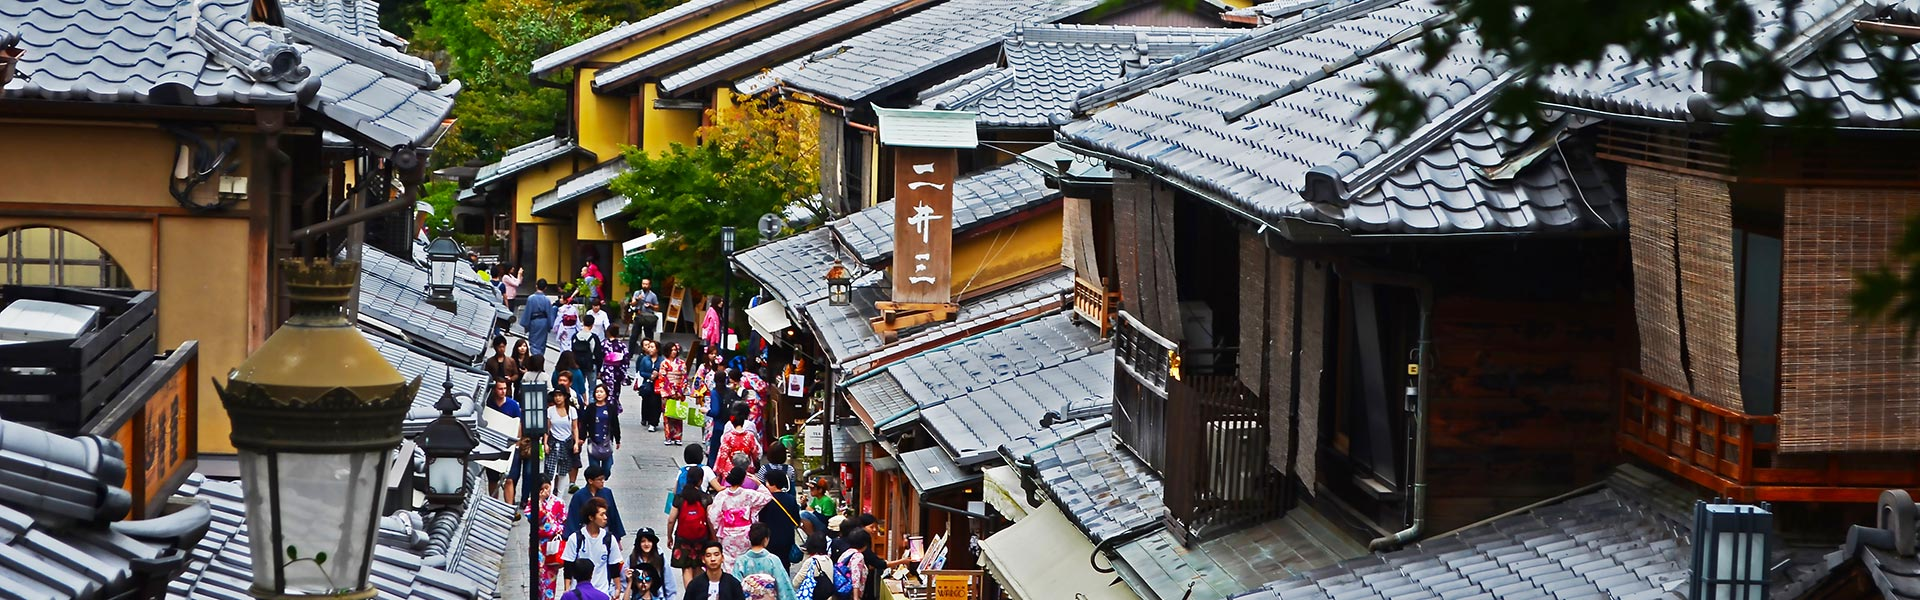 The Original Kyoto Free Walking Tour